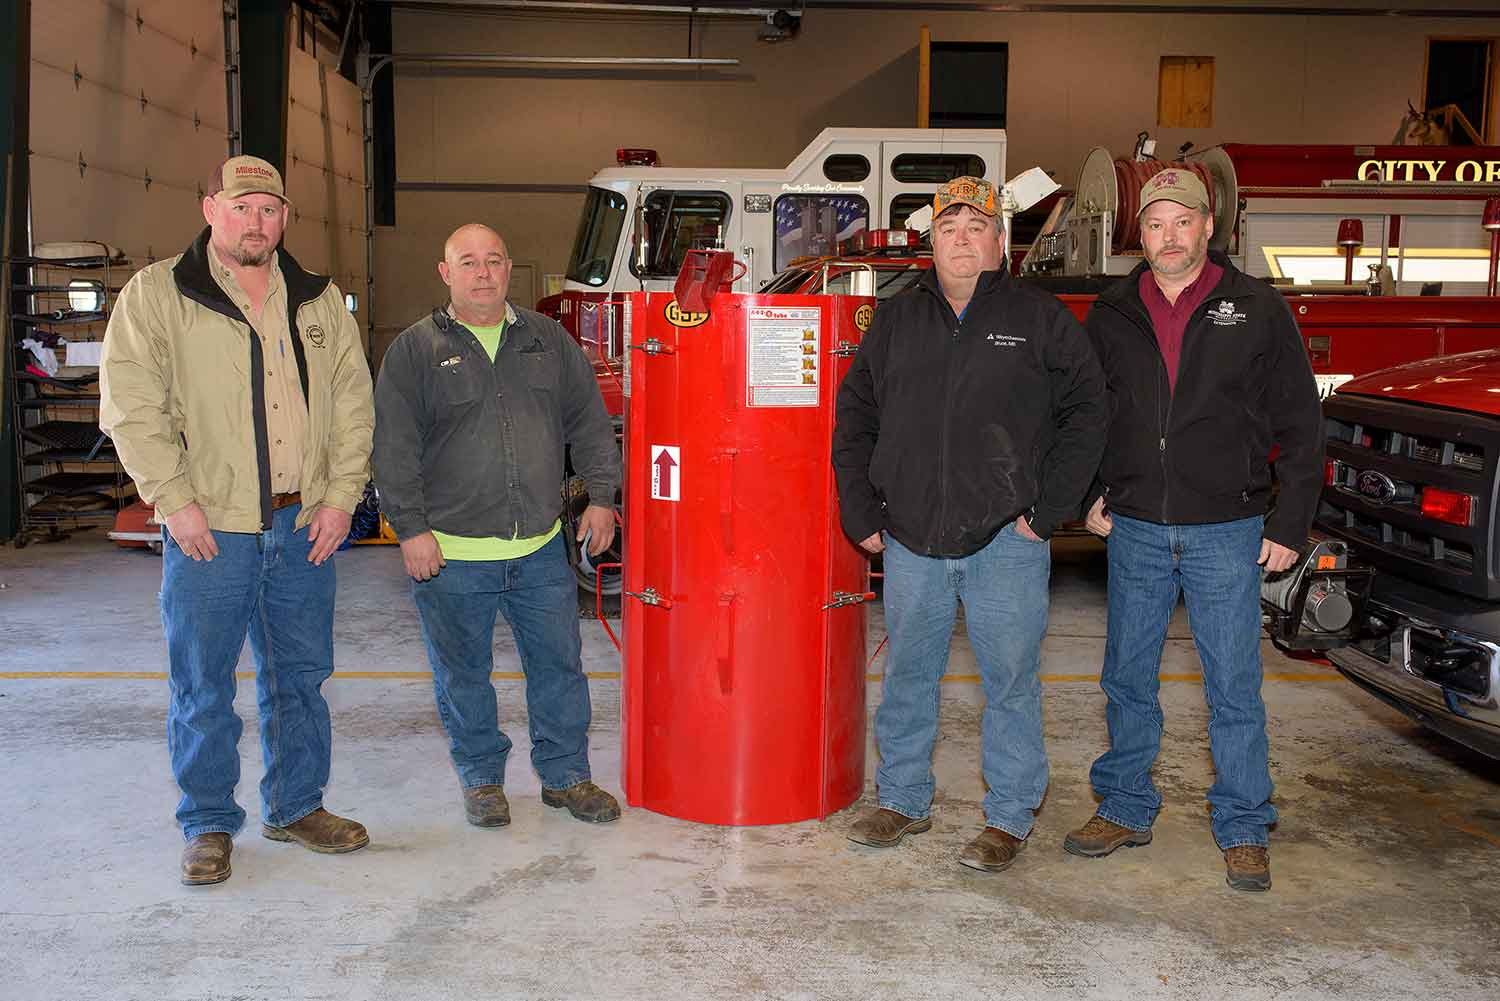 Four men stand in front of a red firetruck.